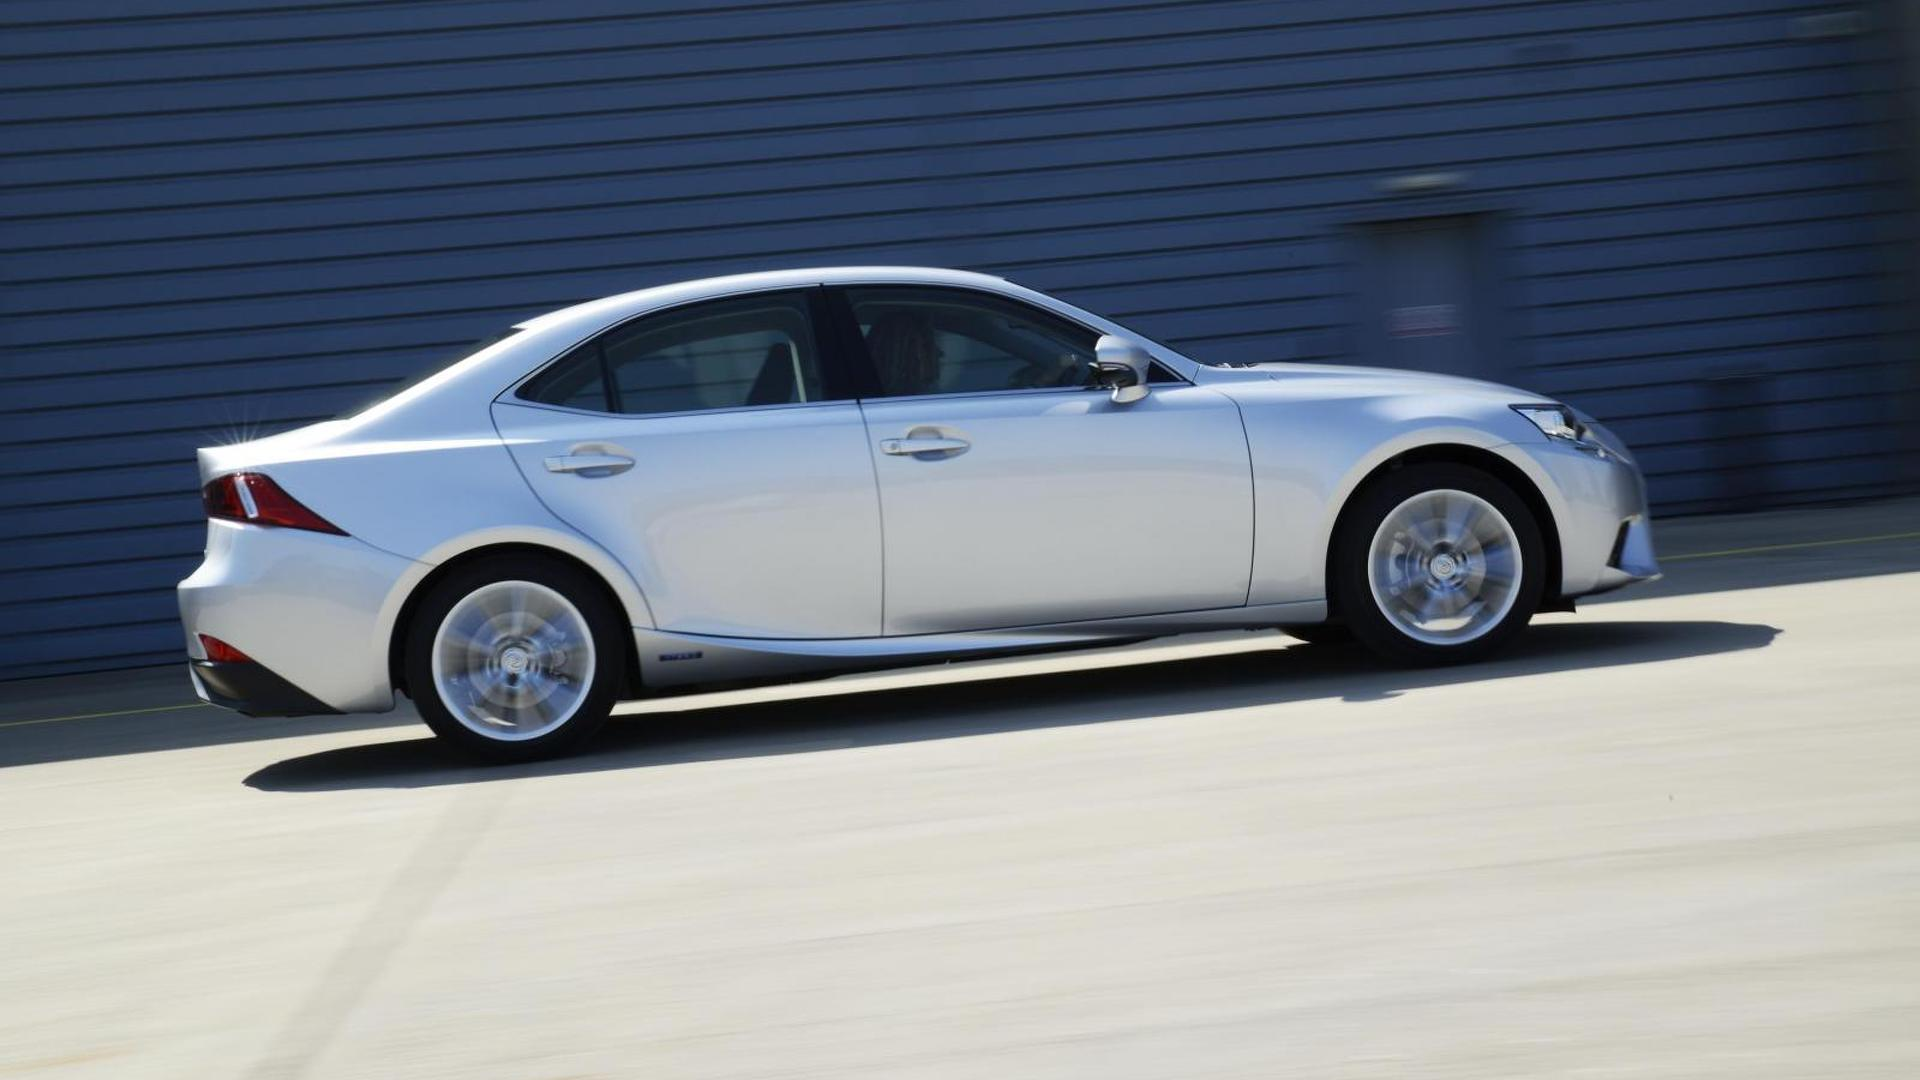 Lexus IS 300h Executive Edition introduced (UK)